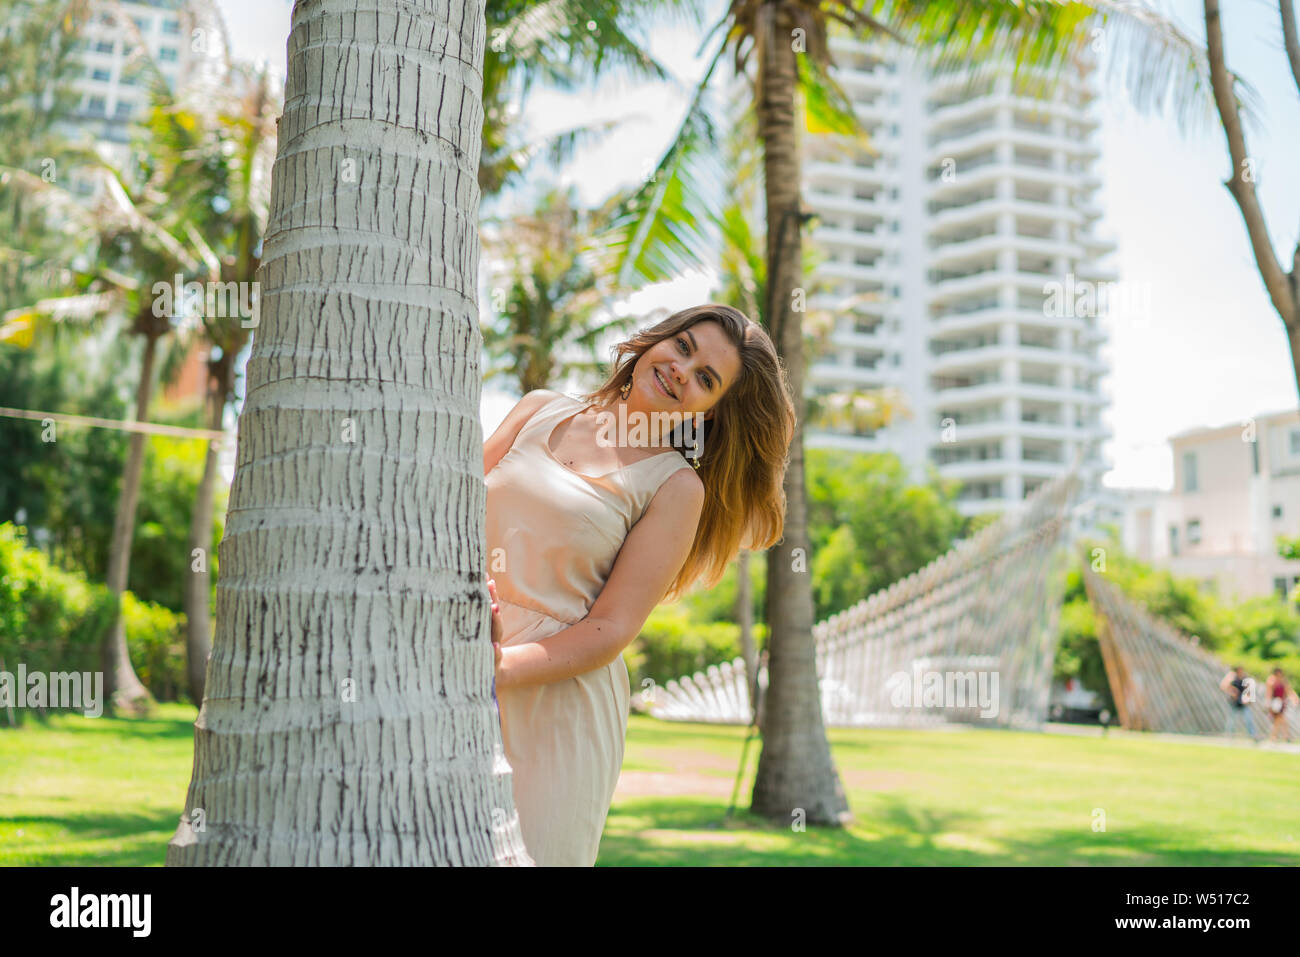 Girl Behind Coconut Tree High Resolution Stock Photography and Images -  Alamy